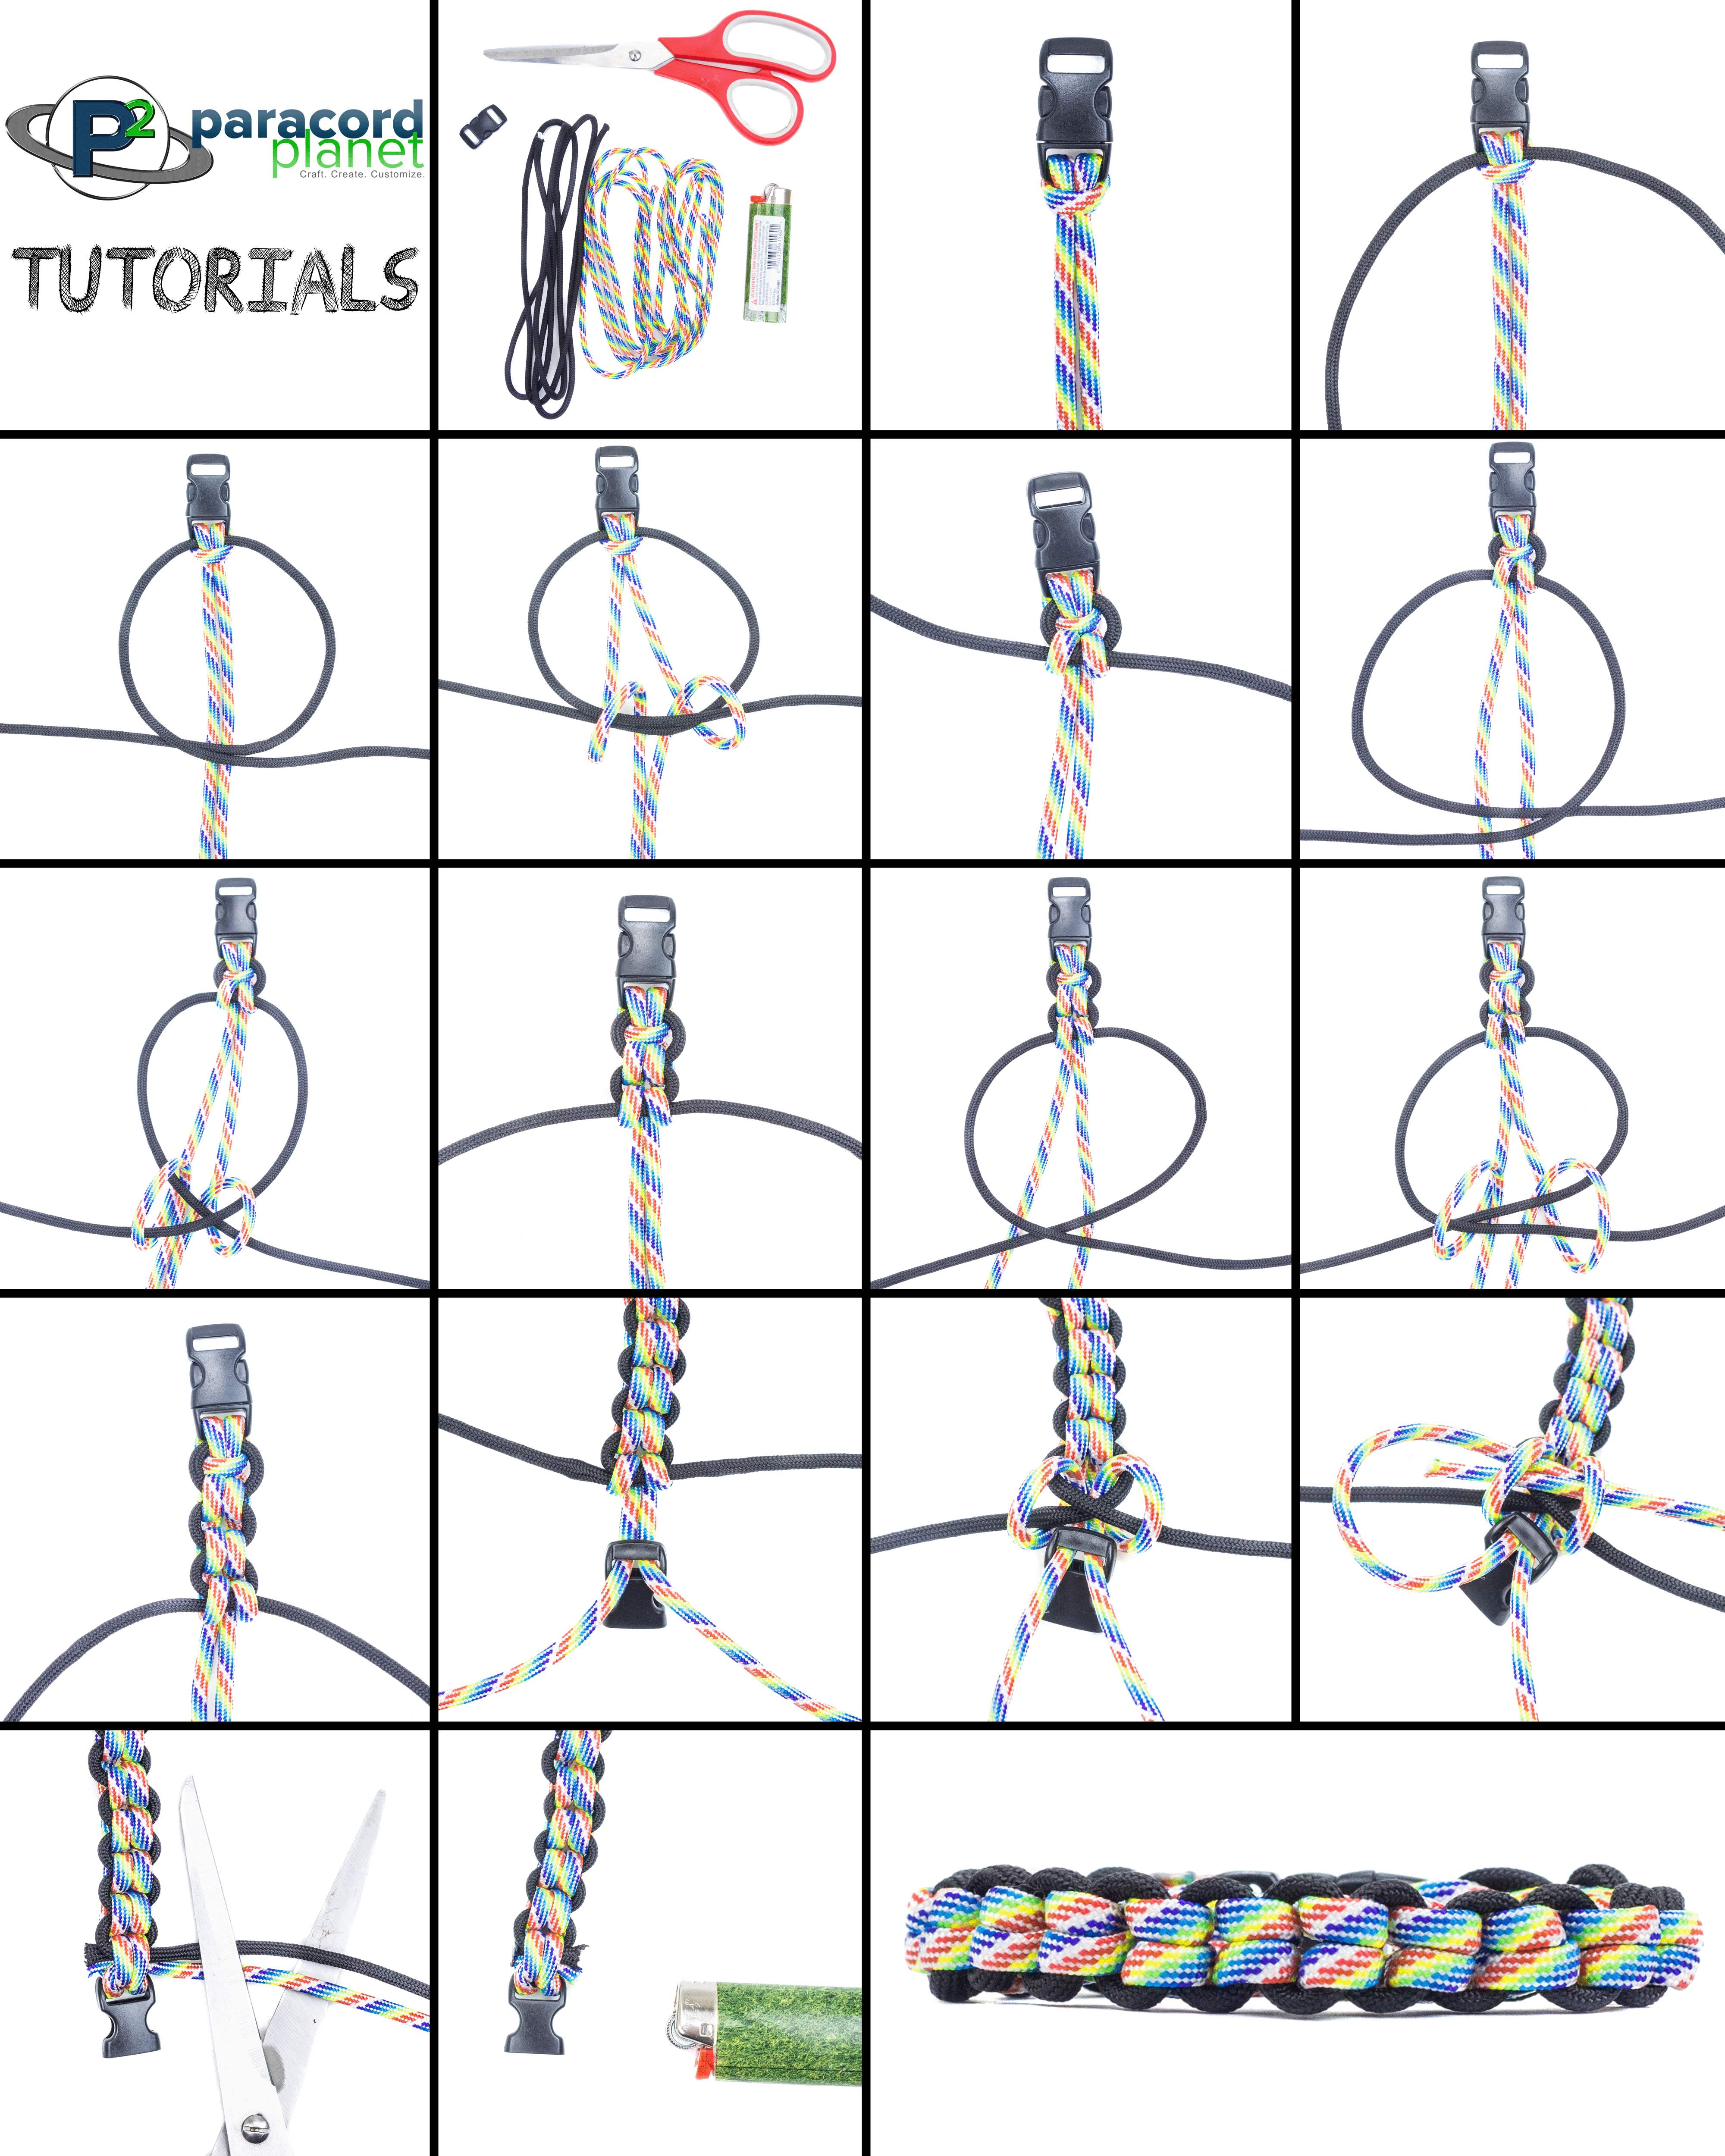 Endless Fall paracord bracelet picture tutorial